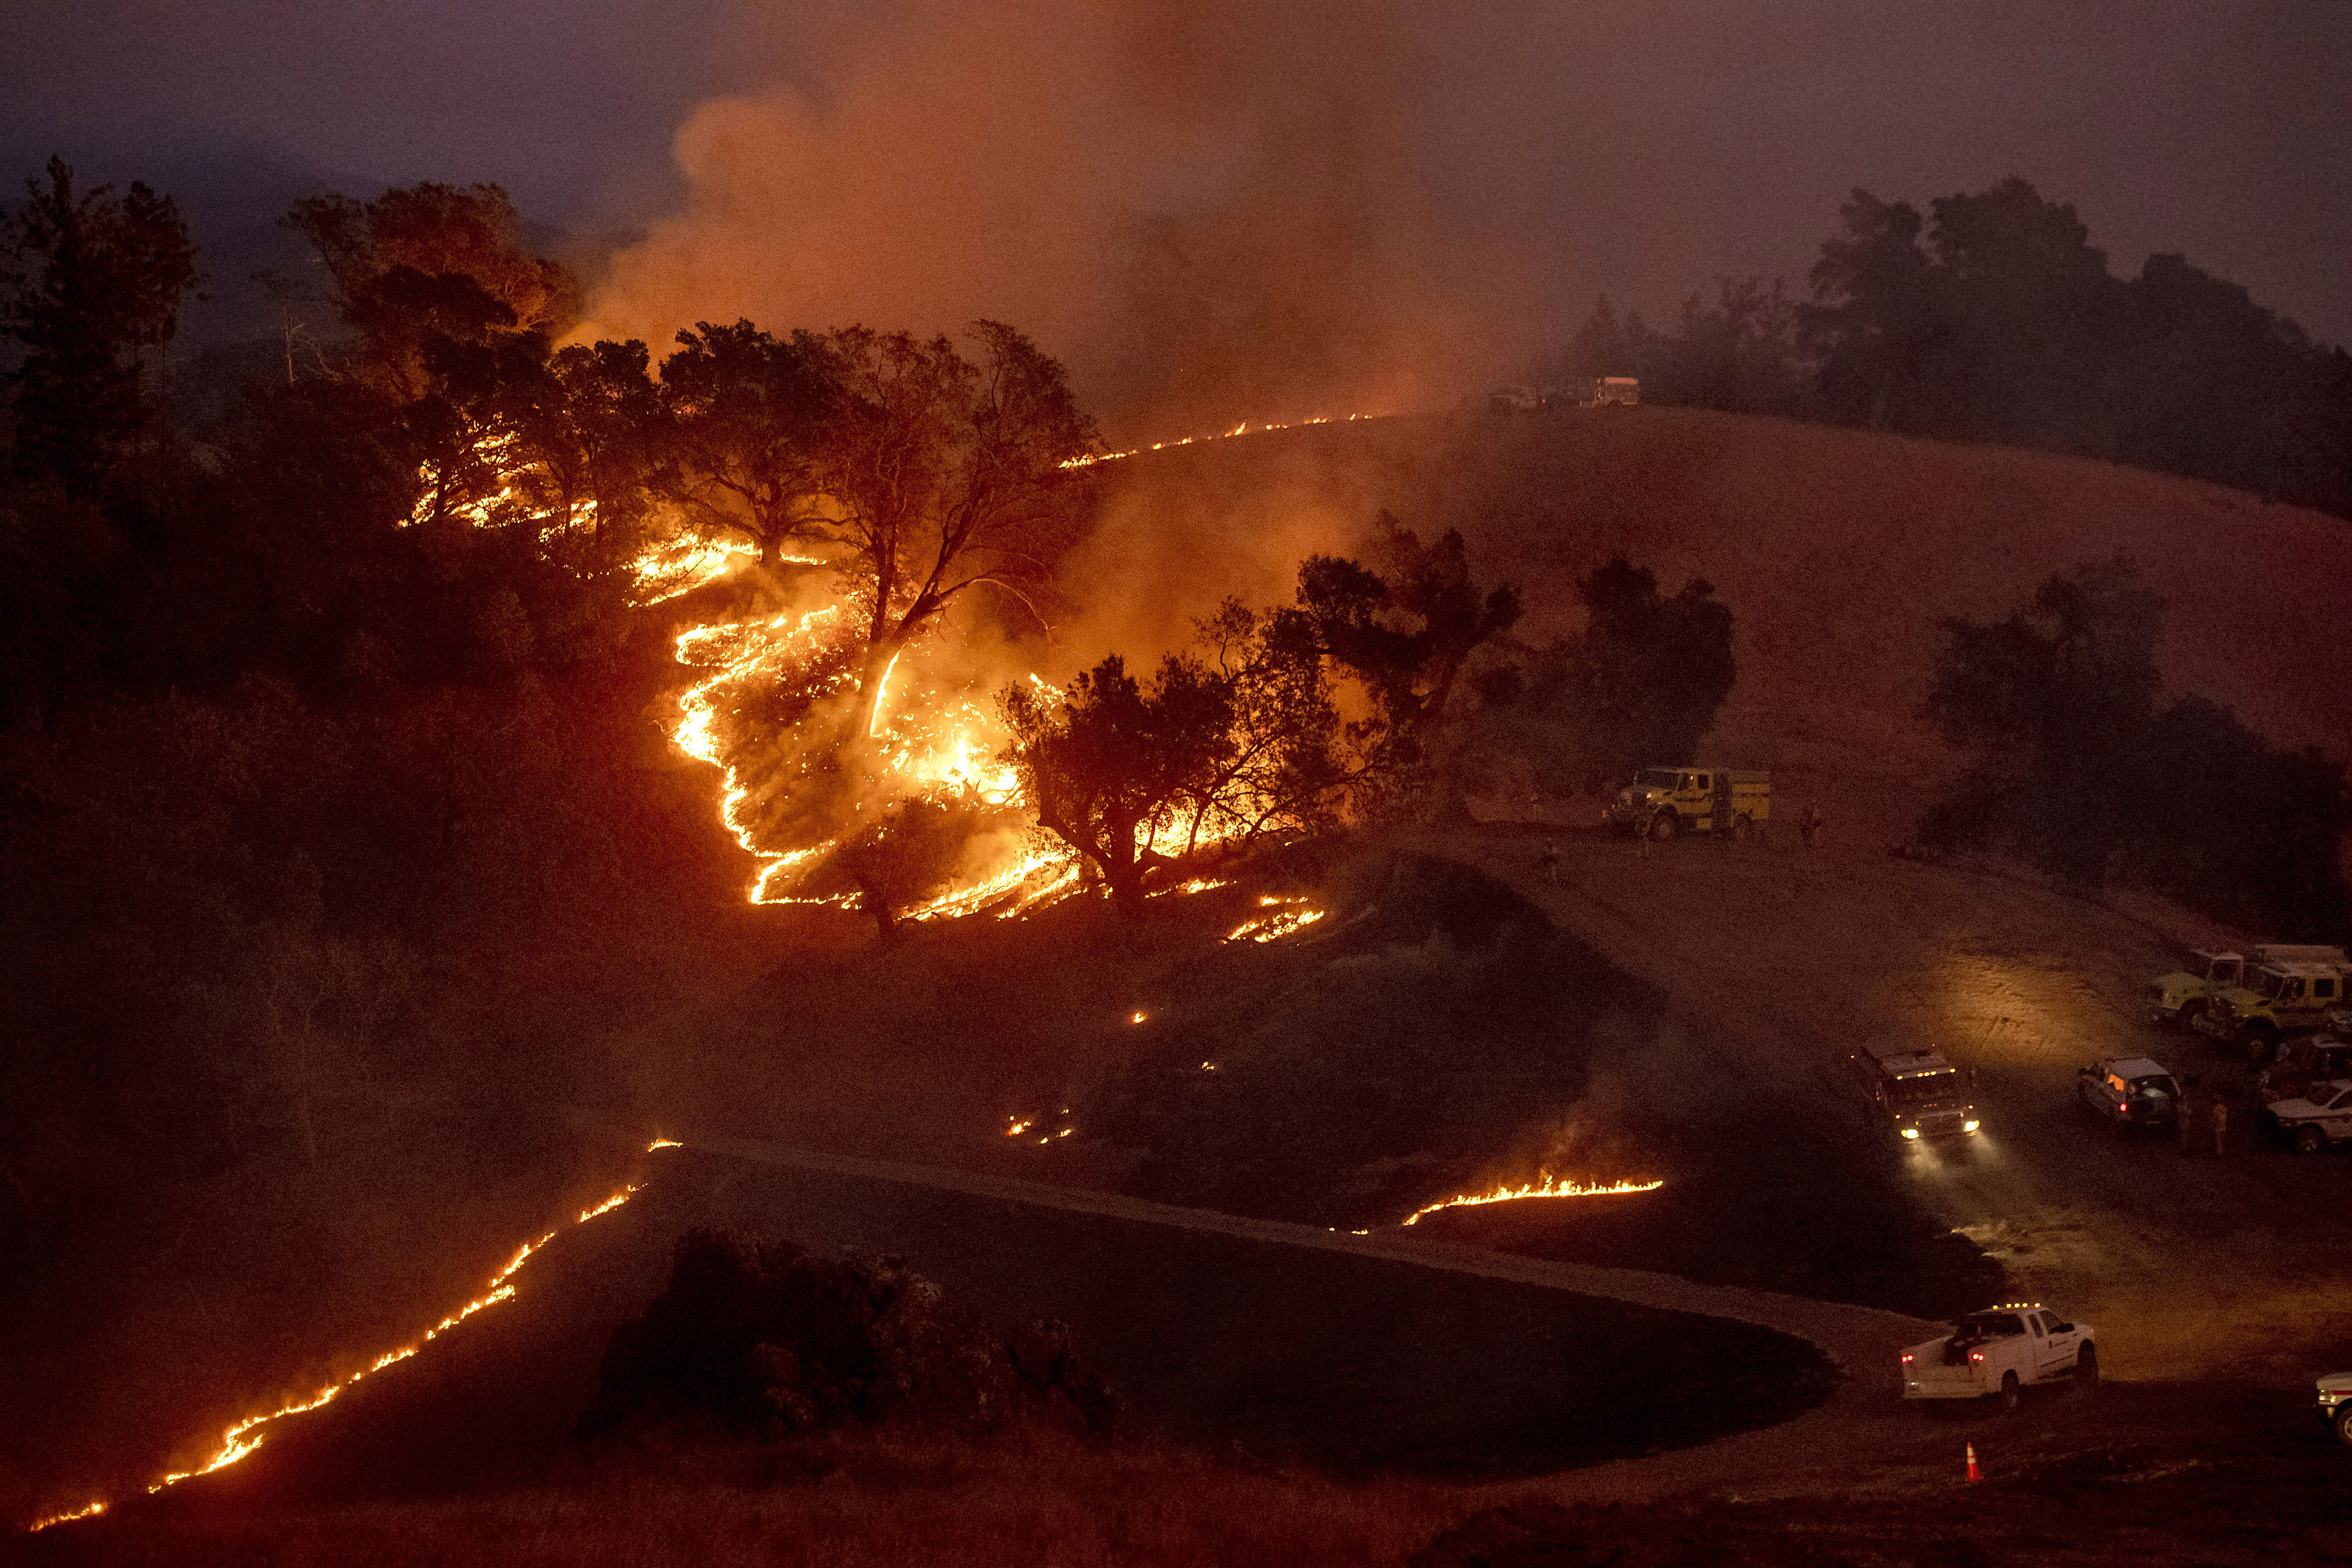 Flames from a backfire, lit by firefighters to slow the spread of the Kincade Fire, burn a hillside in unincorporated Sonoma County, Calif., near Geyservillle on Saturday, Oct. 26, 2019. Authorities are fighting a Northern California blaze that forced evacuation orders and warnings for nearly all of Sonoma County stretching to the coast, with forecasts of strong winds prompting officials to start cutting electricity for millions of people in an effort to prevent more fires. (AP Photo/Noah Berger)